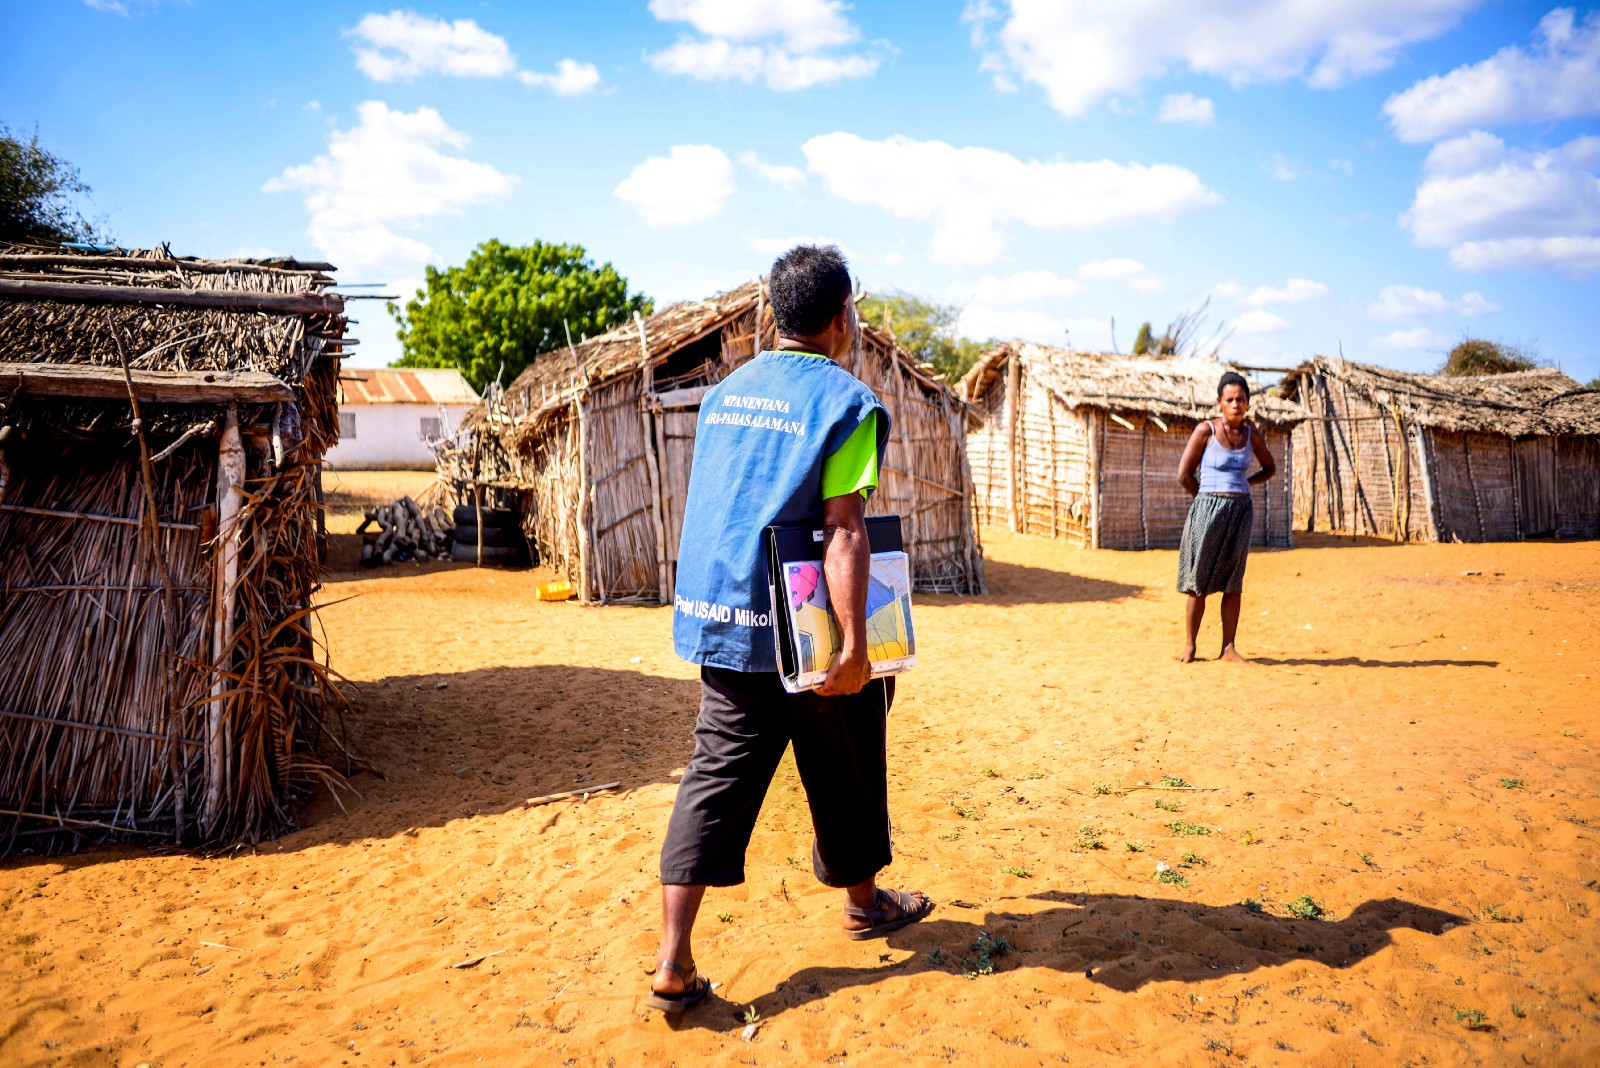 Mosquito Surveillance Uncovers New Information About Malaria Transmission in Madagascar